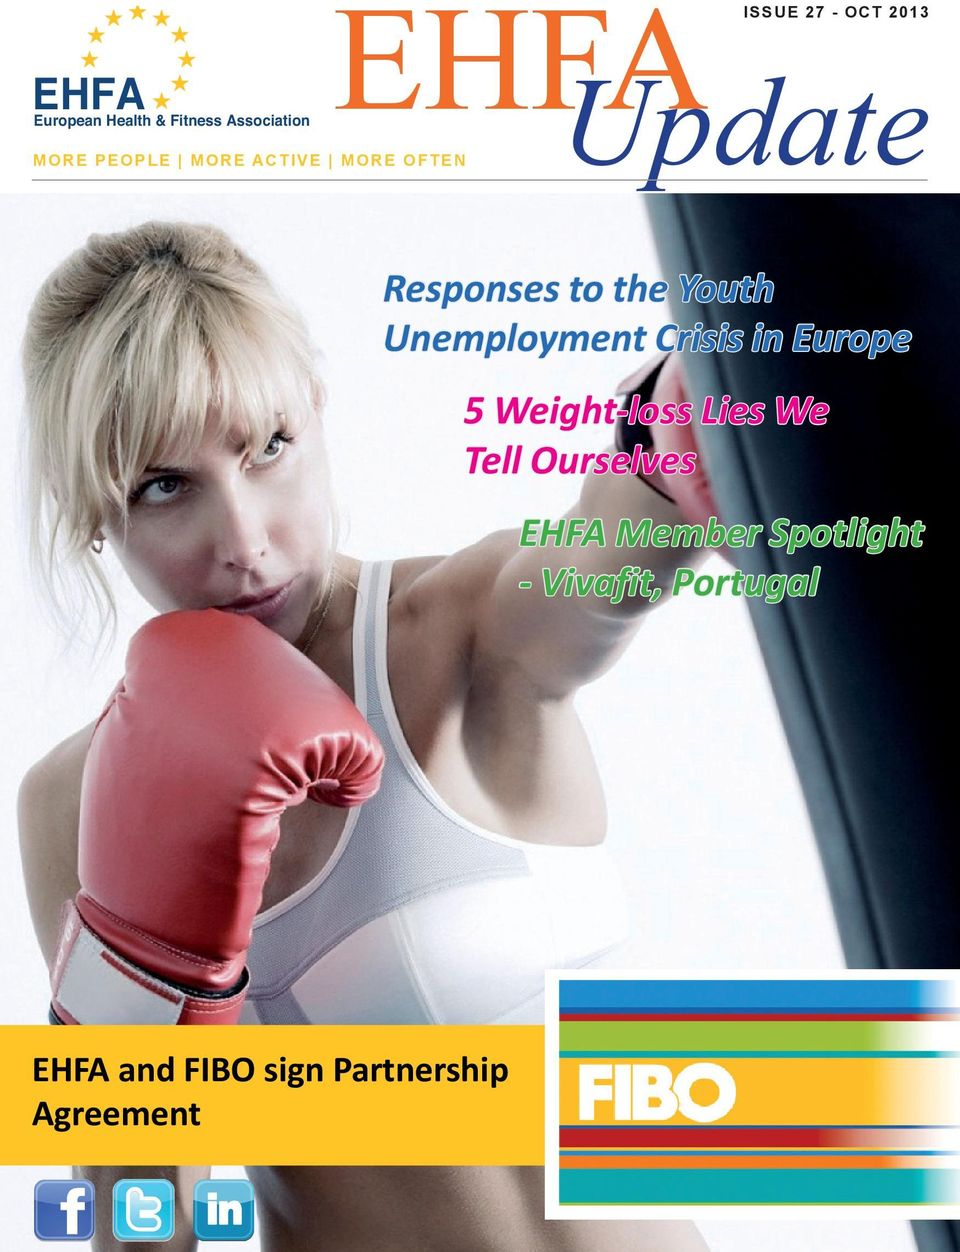 .. to the Youth Unemployment Crisis in Europe Attitudinal Survey: about Trends in Fitness Education &